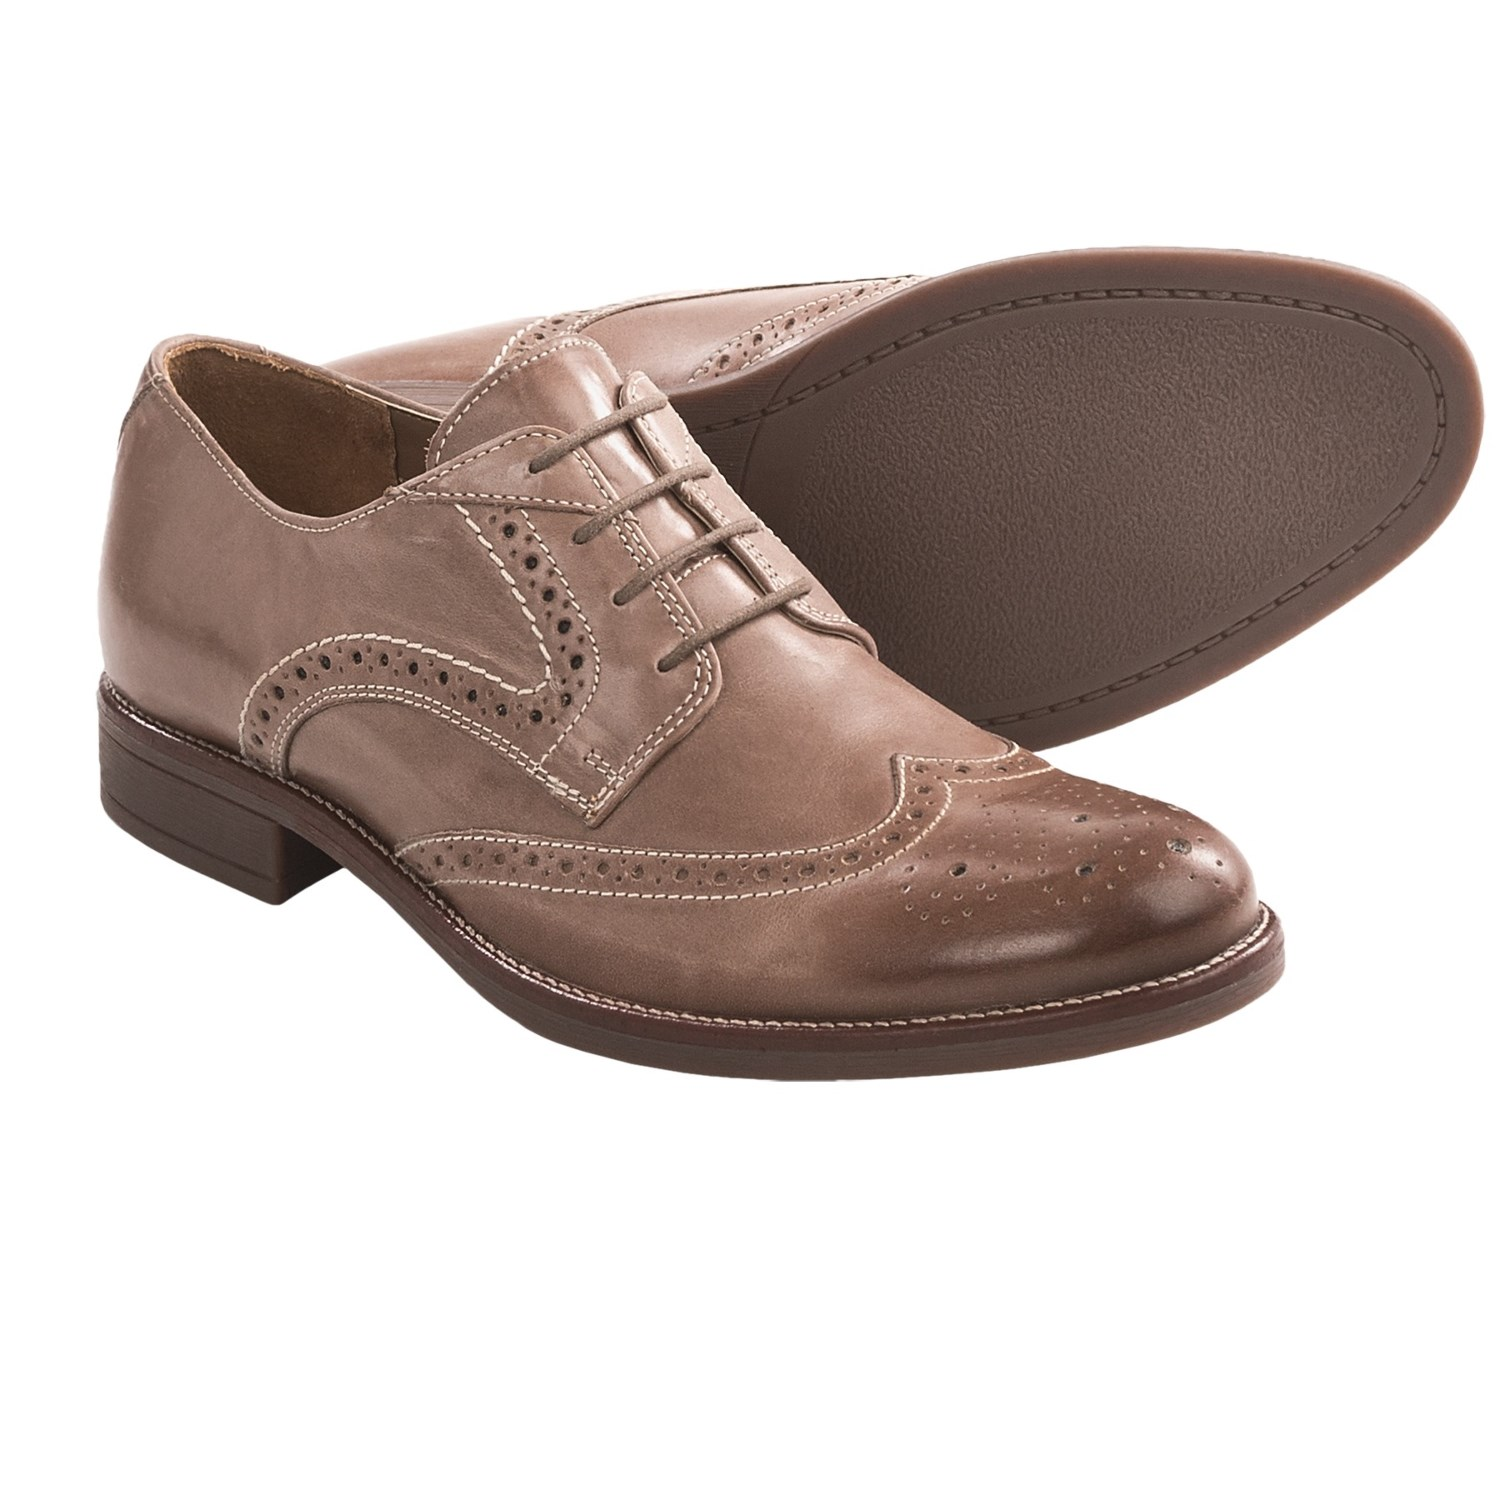 Bostonian Pavillion Wingtip Shoes - Oxfords, Leather (For Men) in Tan